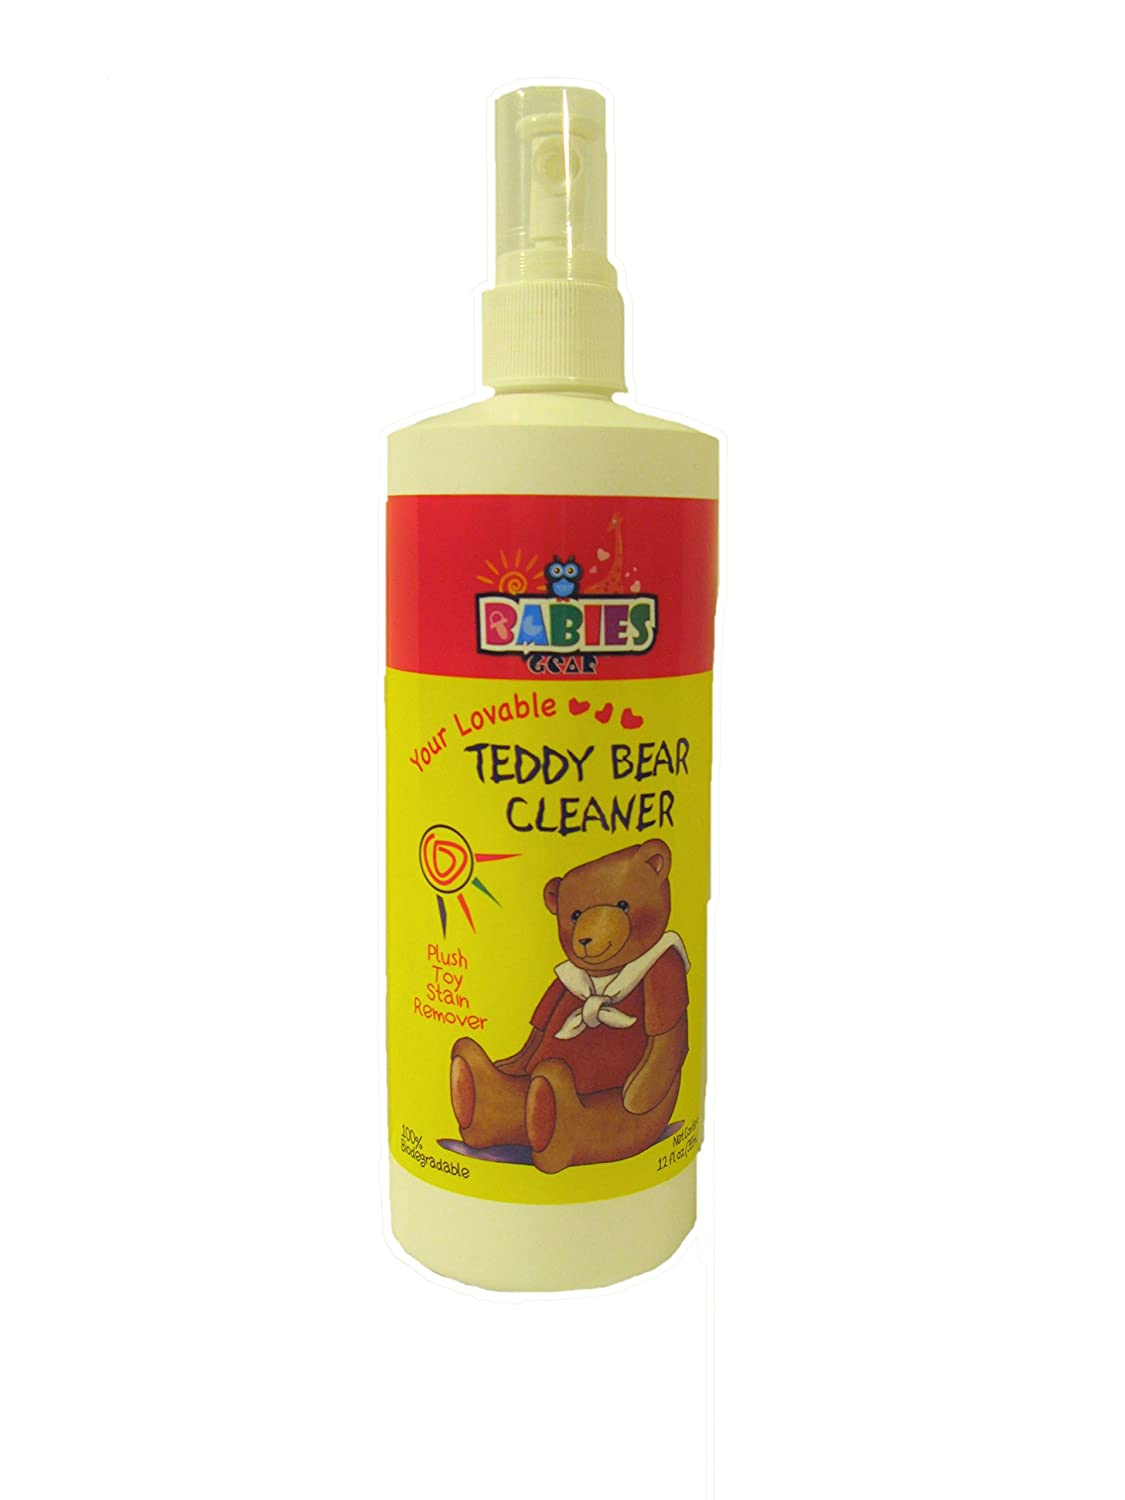 Amazon.com: Baby Plush Toy Cleaner Teddy Bear Cleaner by Babies Gear: Toys & Games